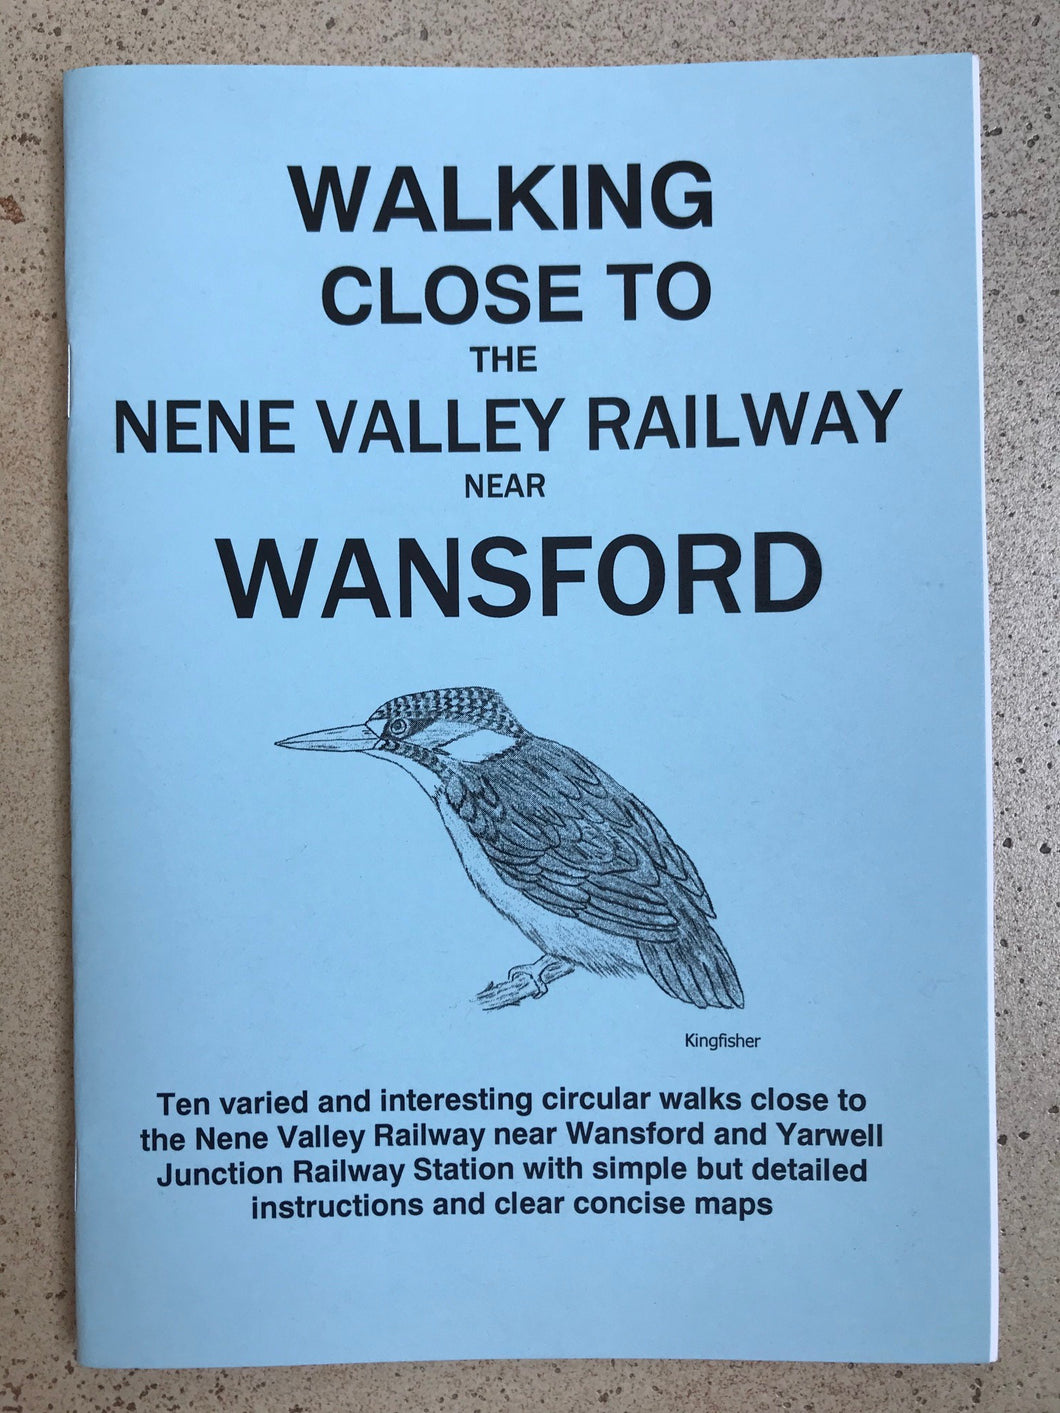 Walks - Walking close to the Nene Valley Railway near Wansford